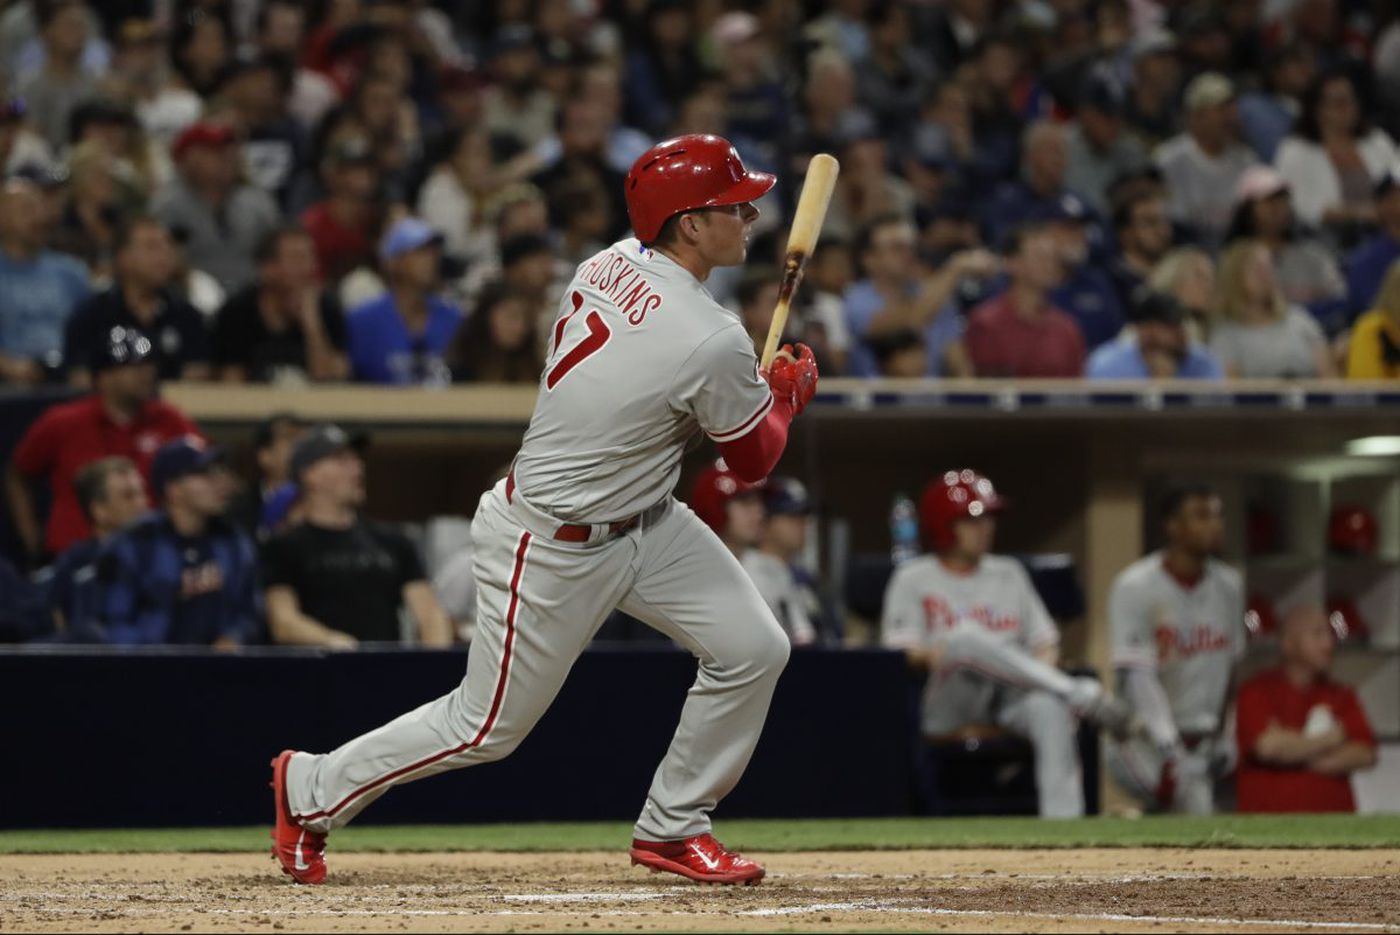 Rhys Hoskins hits two homers, but Phillies lose